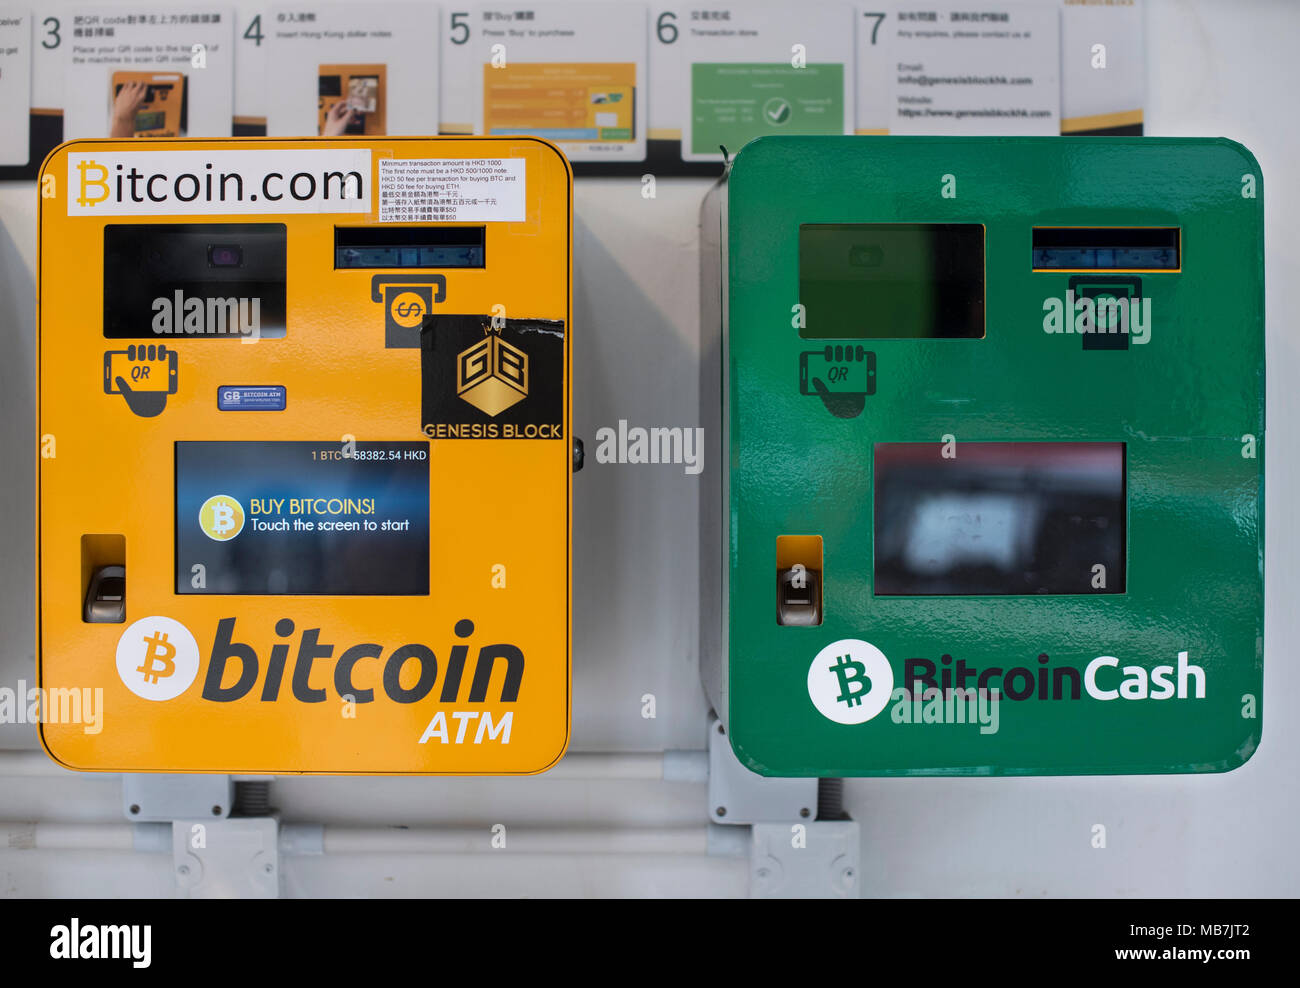 A Bitcoin ATM machine in Wan Chai, Hong Kong Stock Photo ...